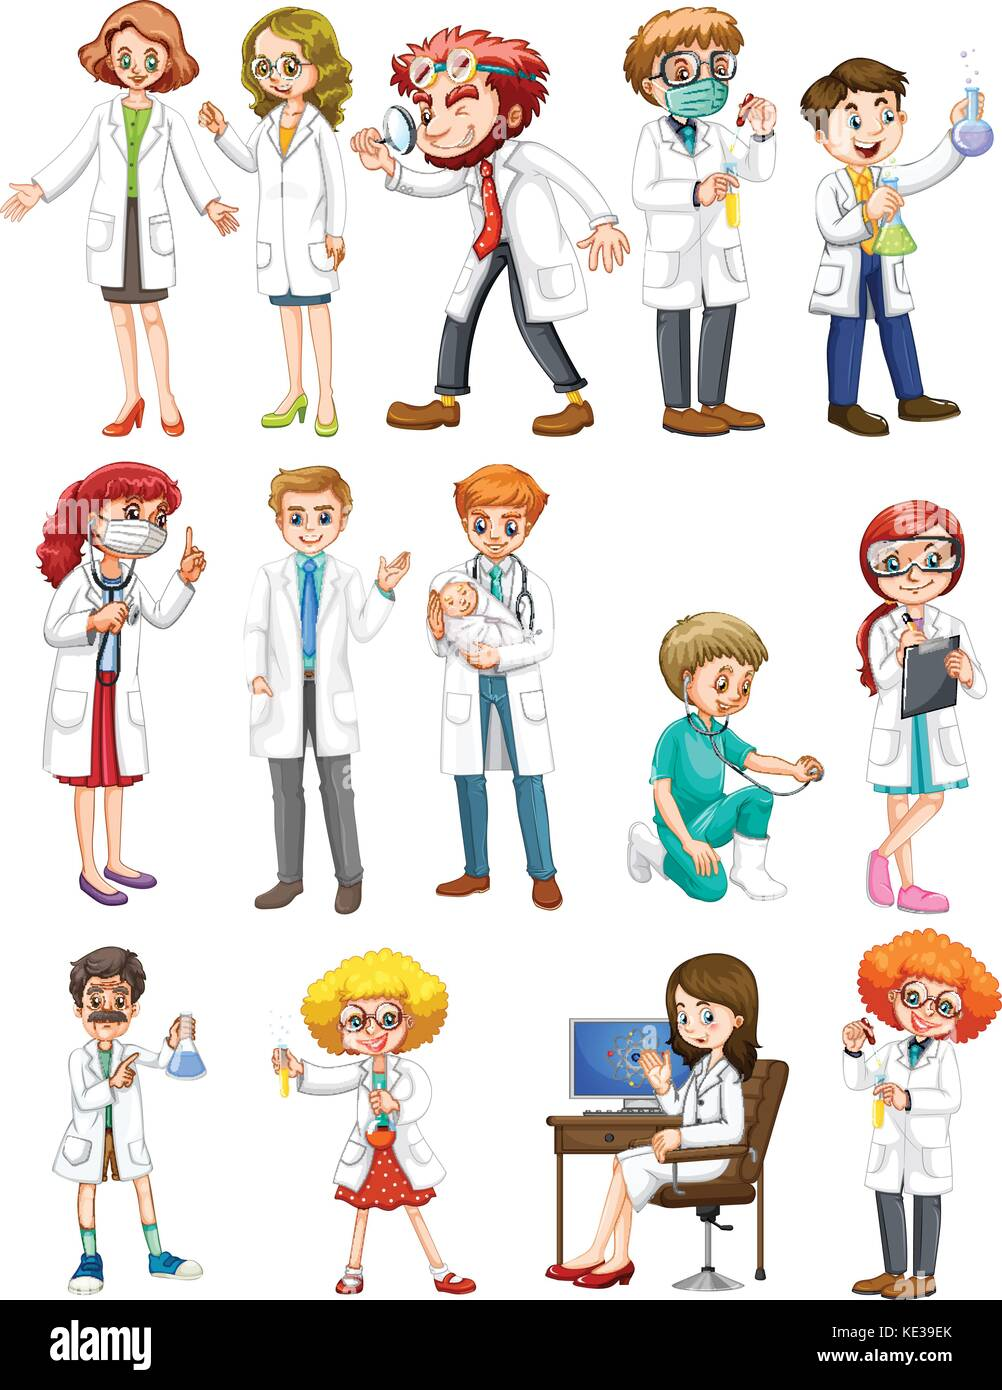 Male and female scientists in white gown illustration - Stock Vector